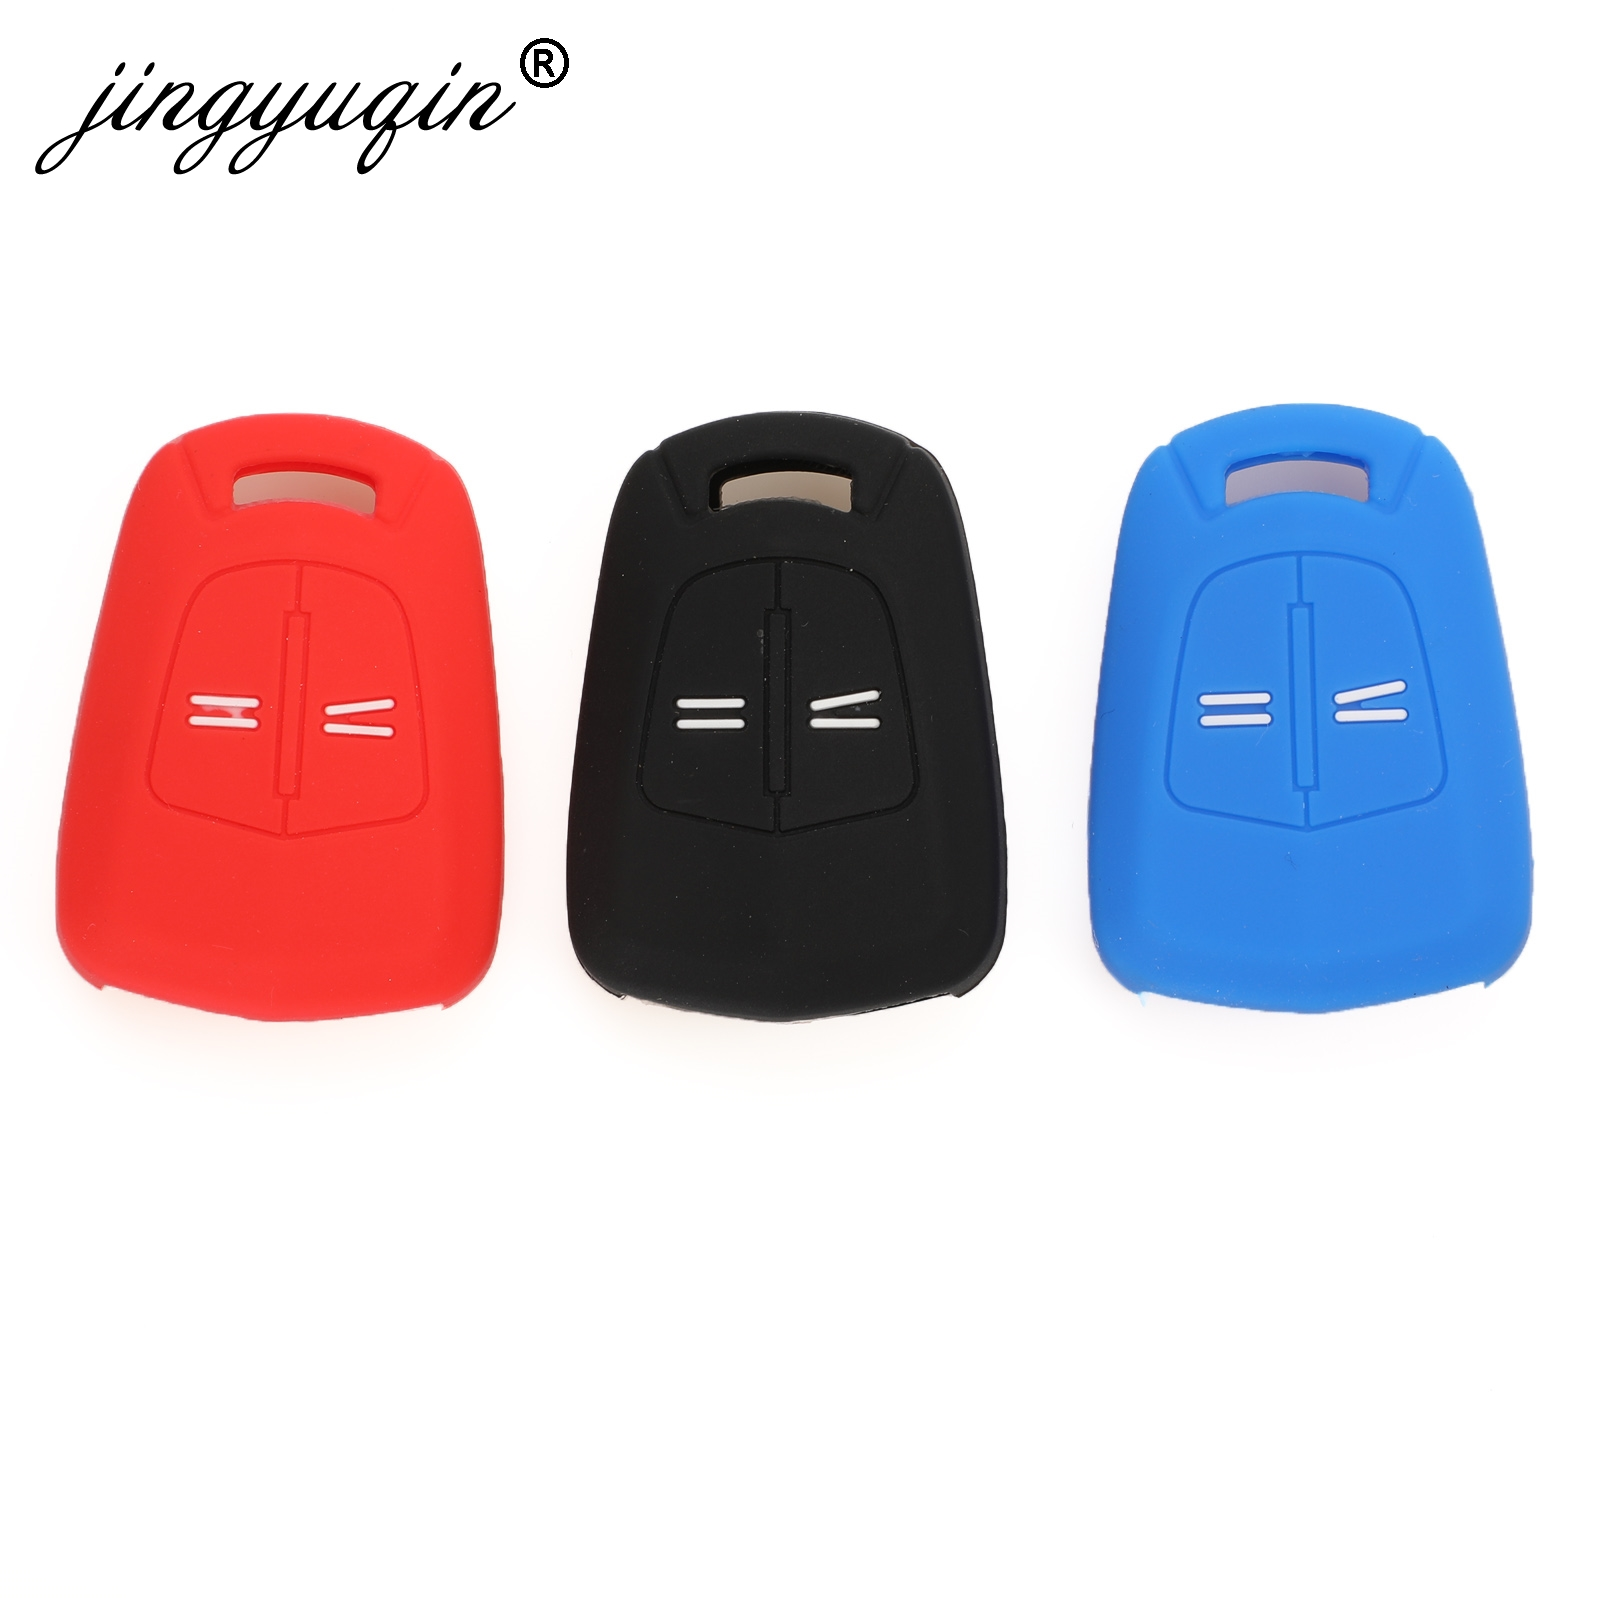 Jingyuqin 2Button Silicone Remote Key Case For Vauxhall /Opel Corsa D ASTRA H Meriva Vectra Zafira Signum Agila Fob Cover Holder